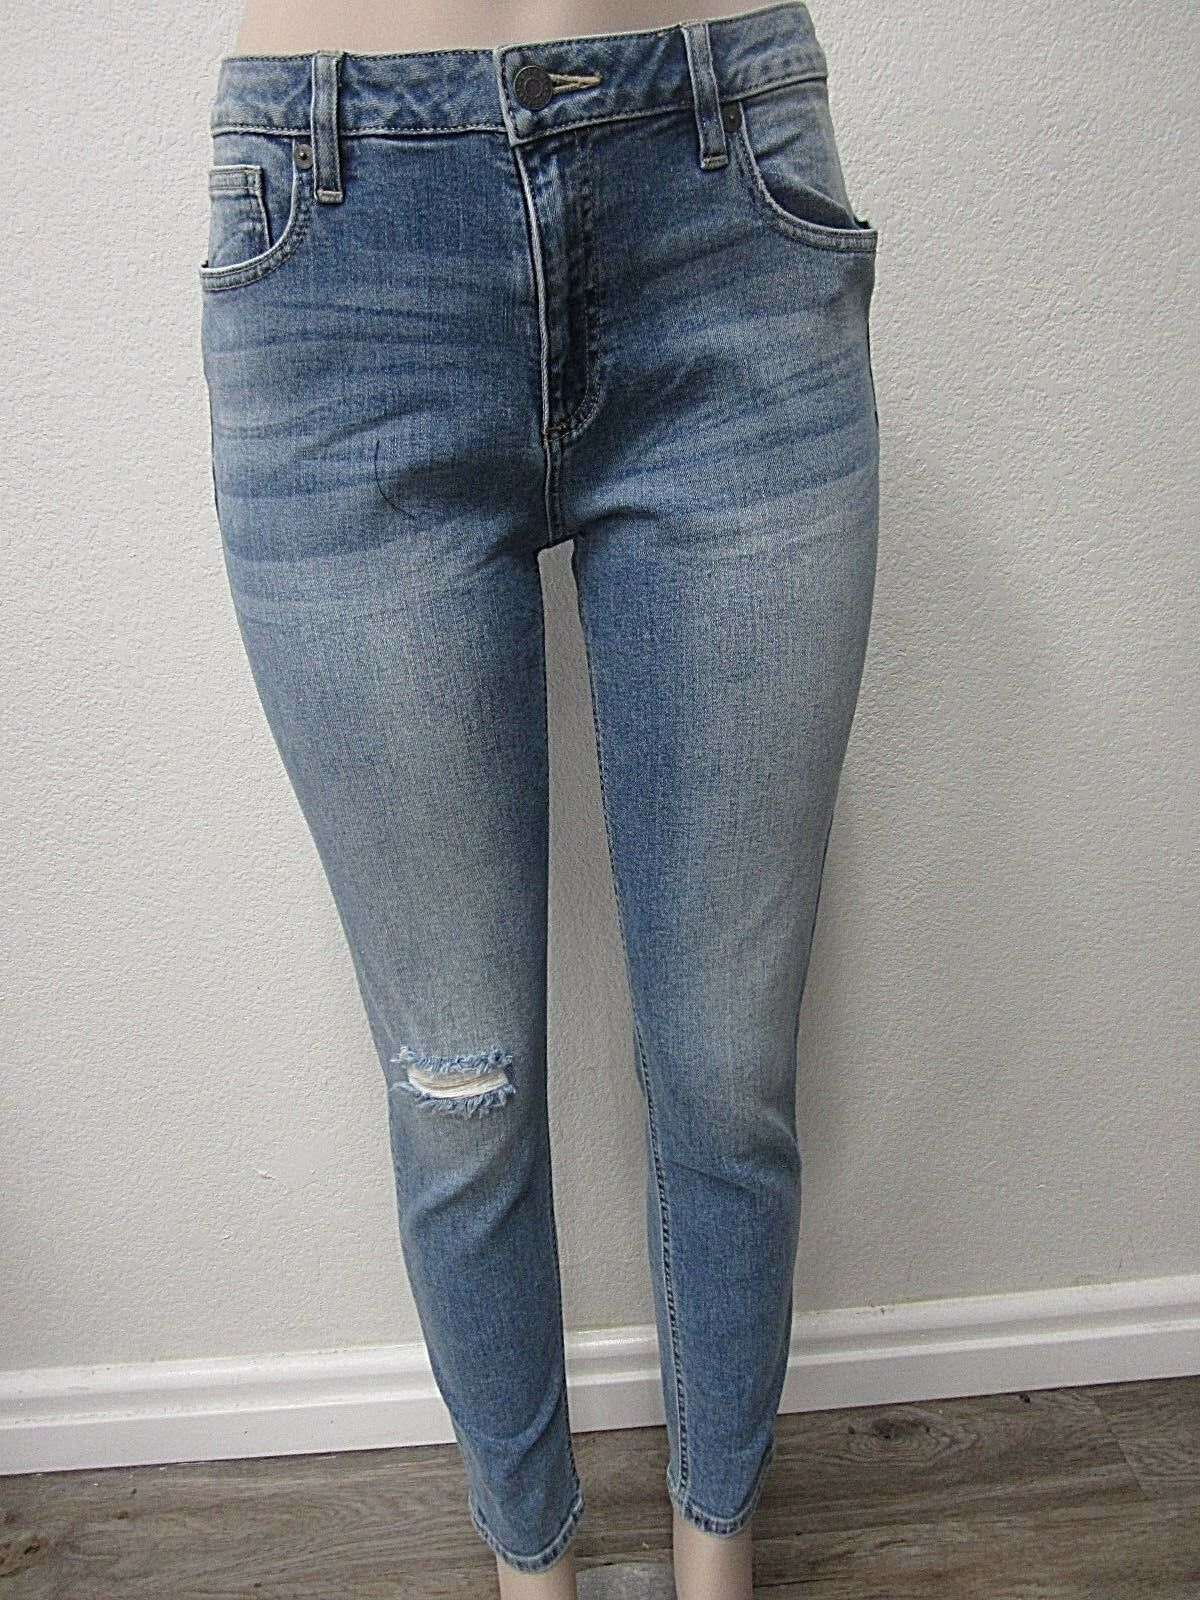 NWT Miss Me Womens bluee Distressed Mid Rise Skinny Jeans M1001S15 Size 29 X 27